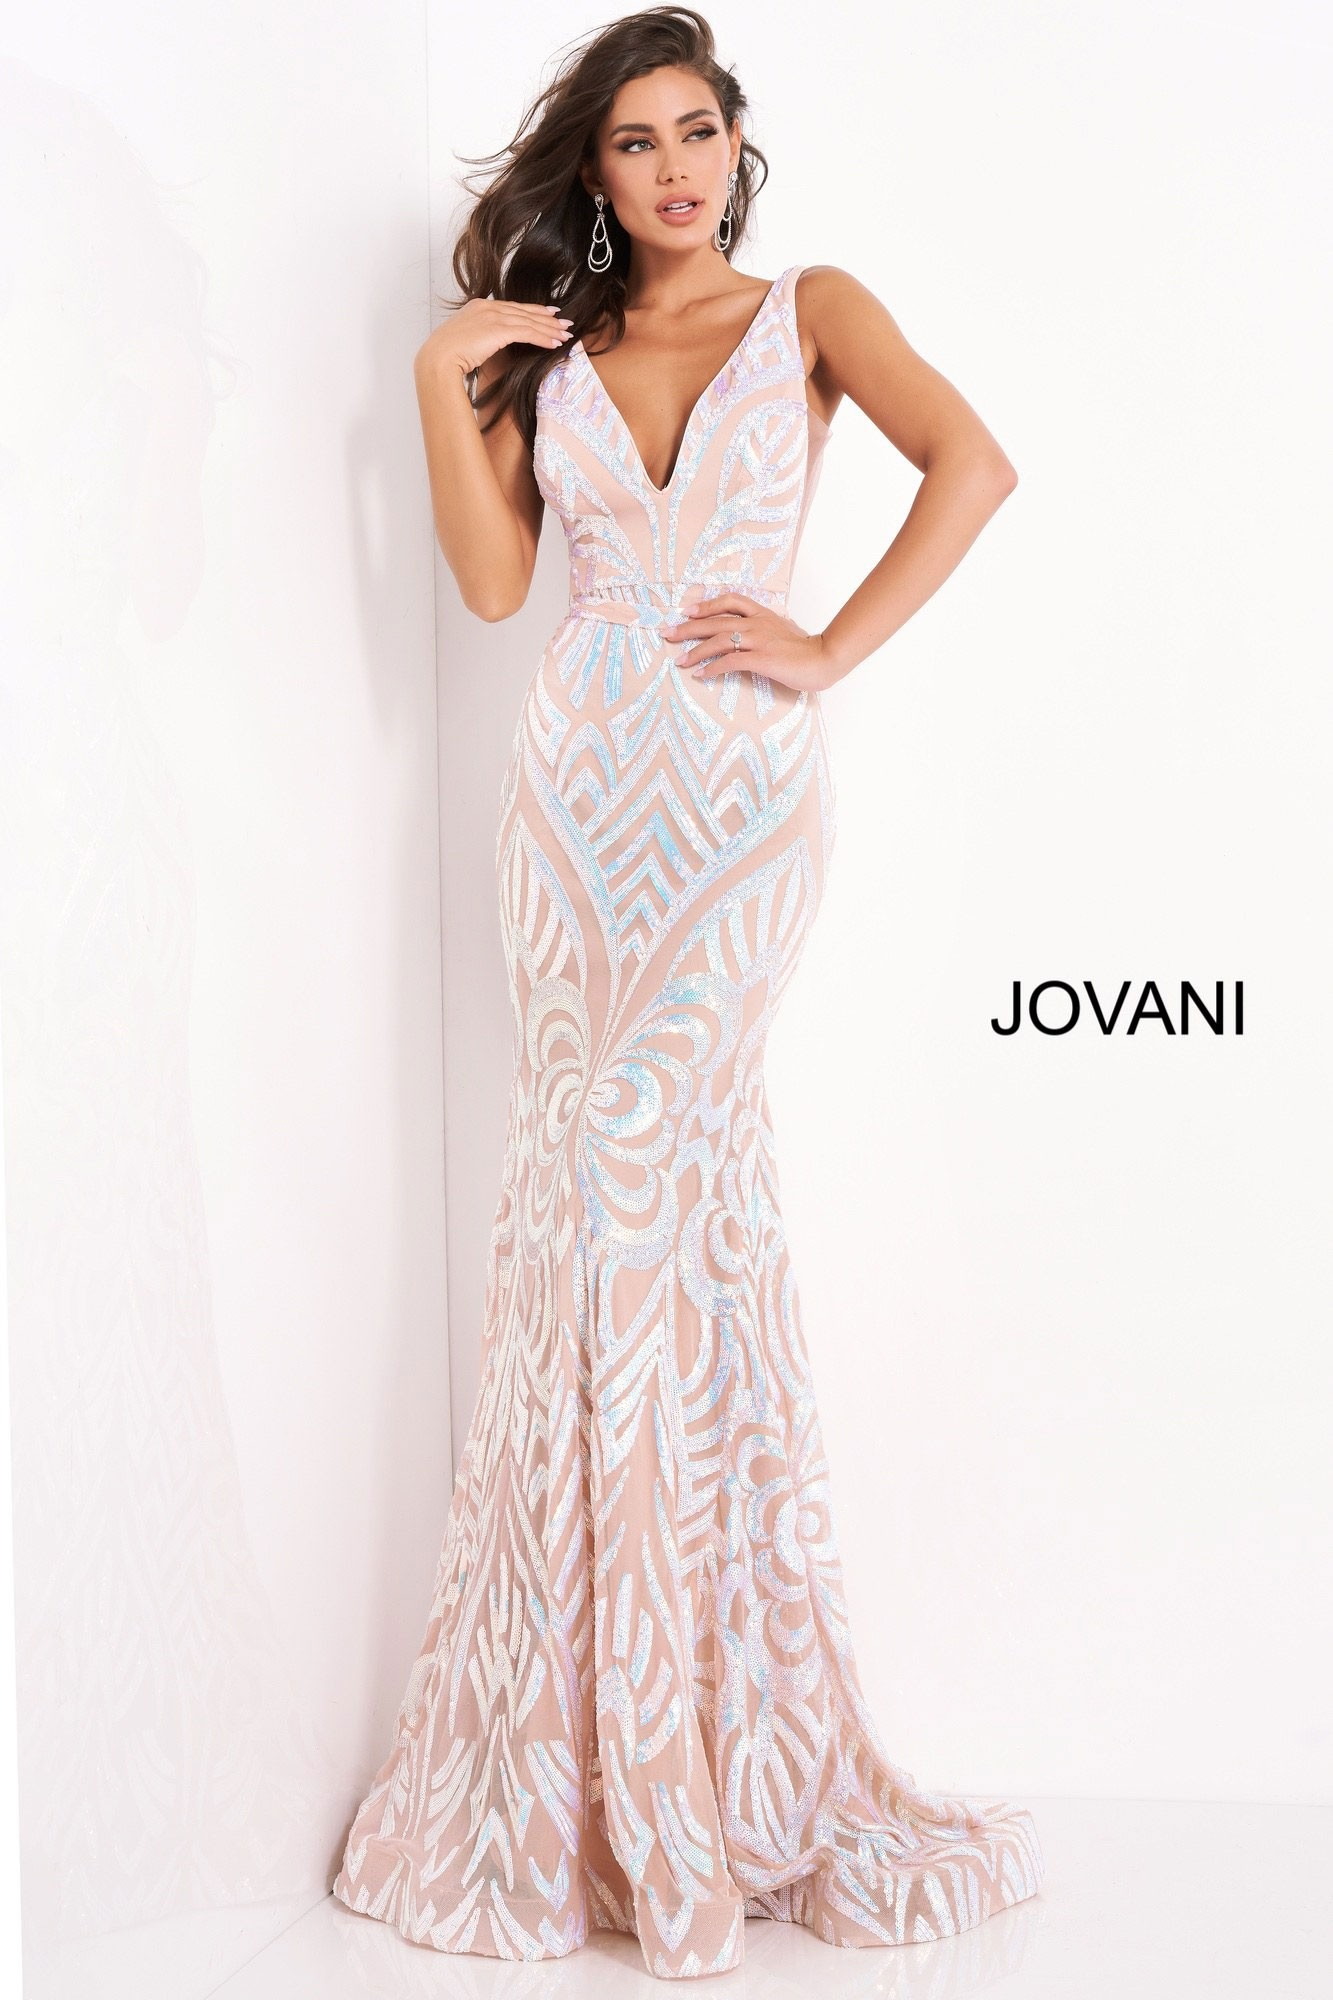 Jovani 02753 Sequin Embellished Prom Dress